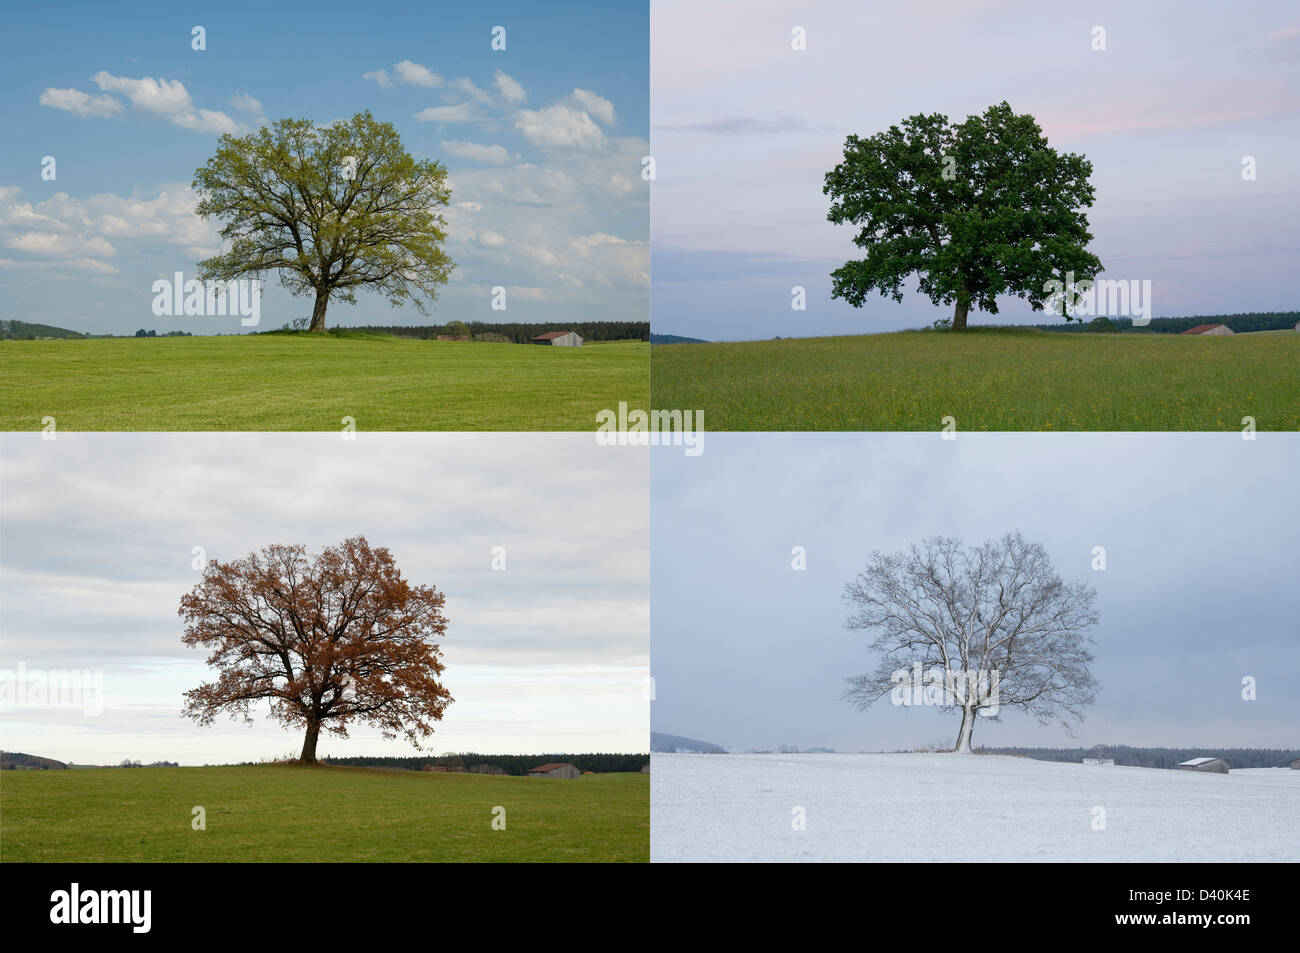 Same Oak Tree in Four Seasons - Spring, Summer, Autumn and Winter. - Stock Image